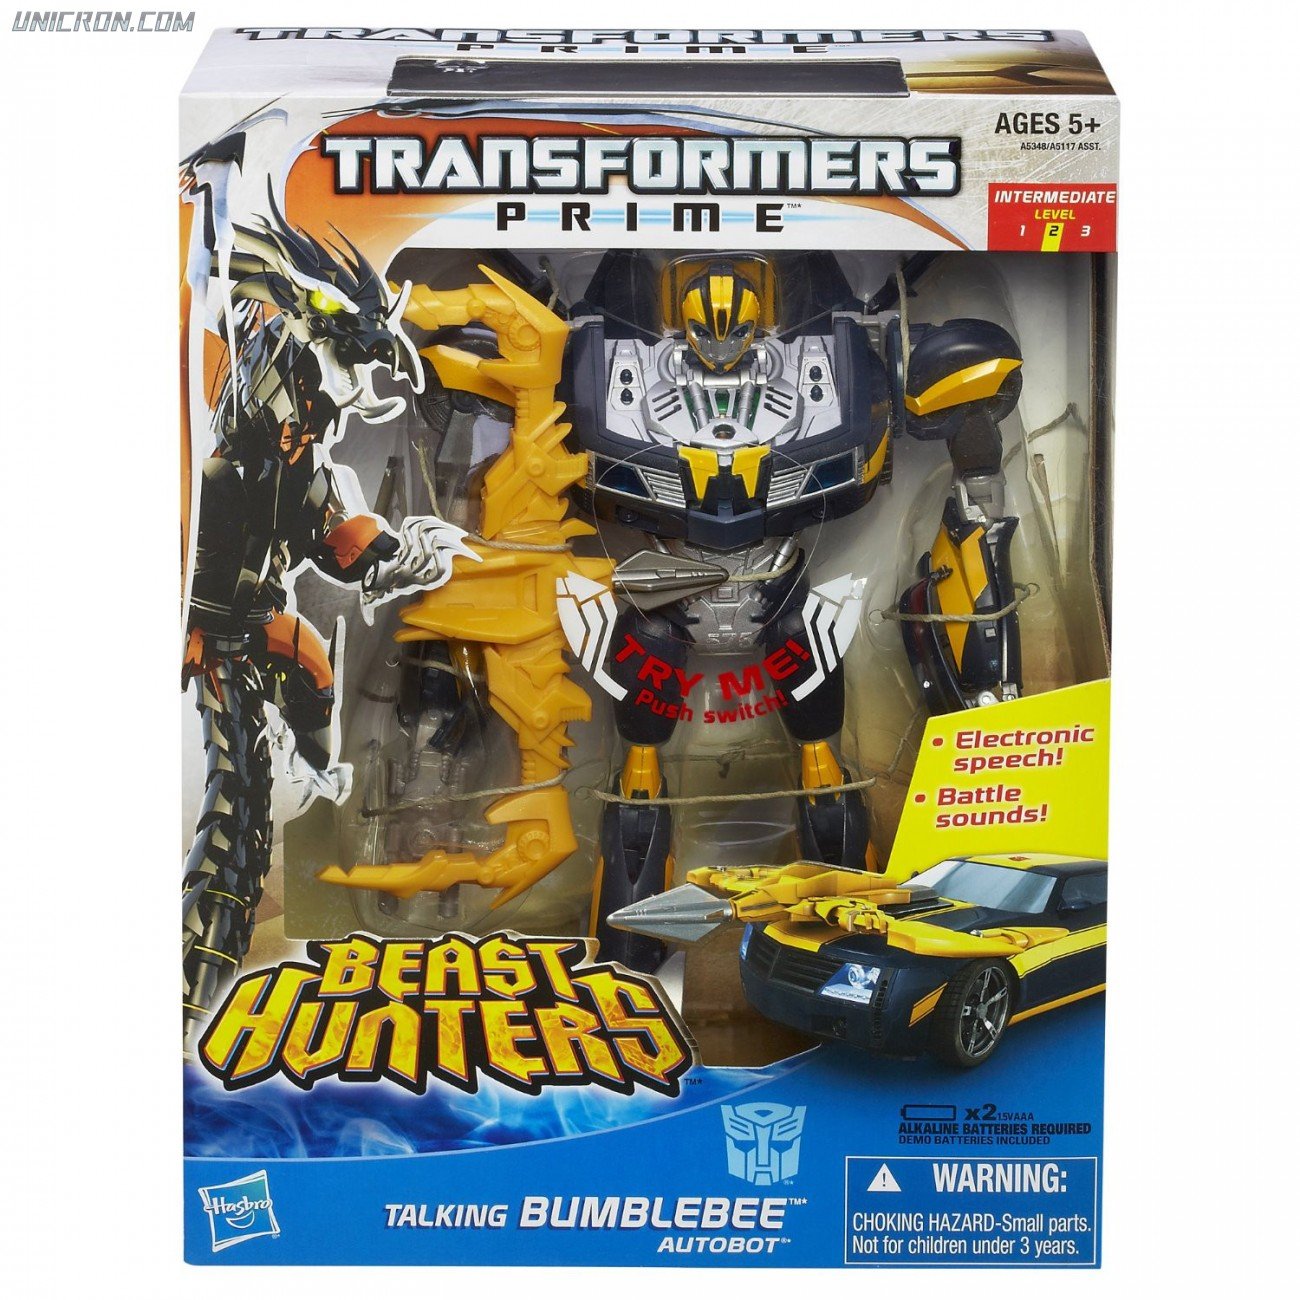 Transformers Prime Talking Bumblebee toy